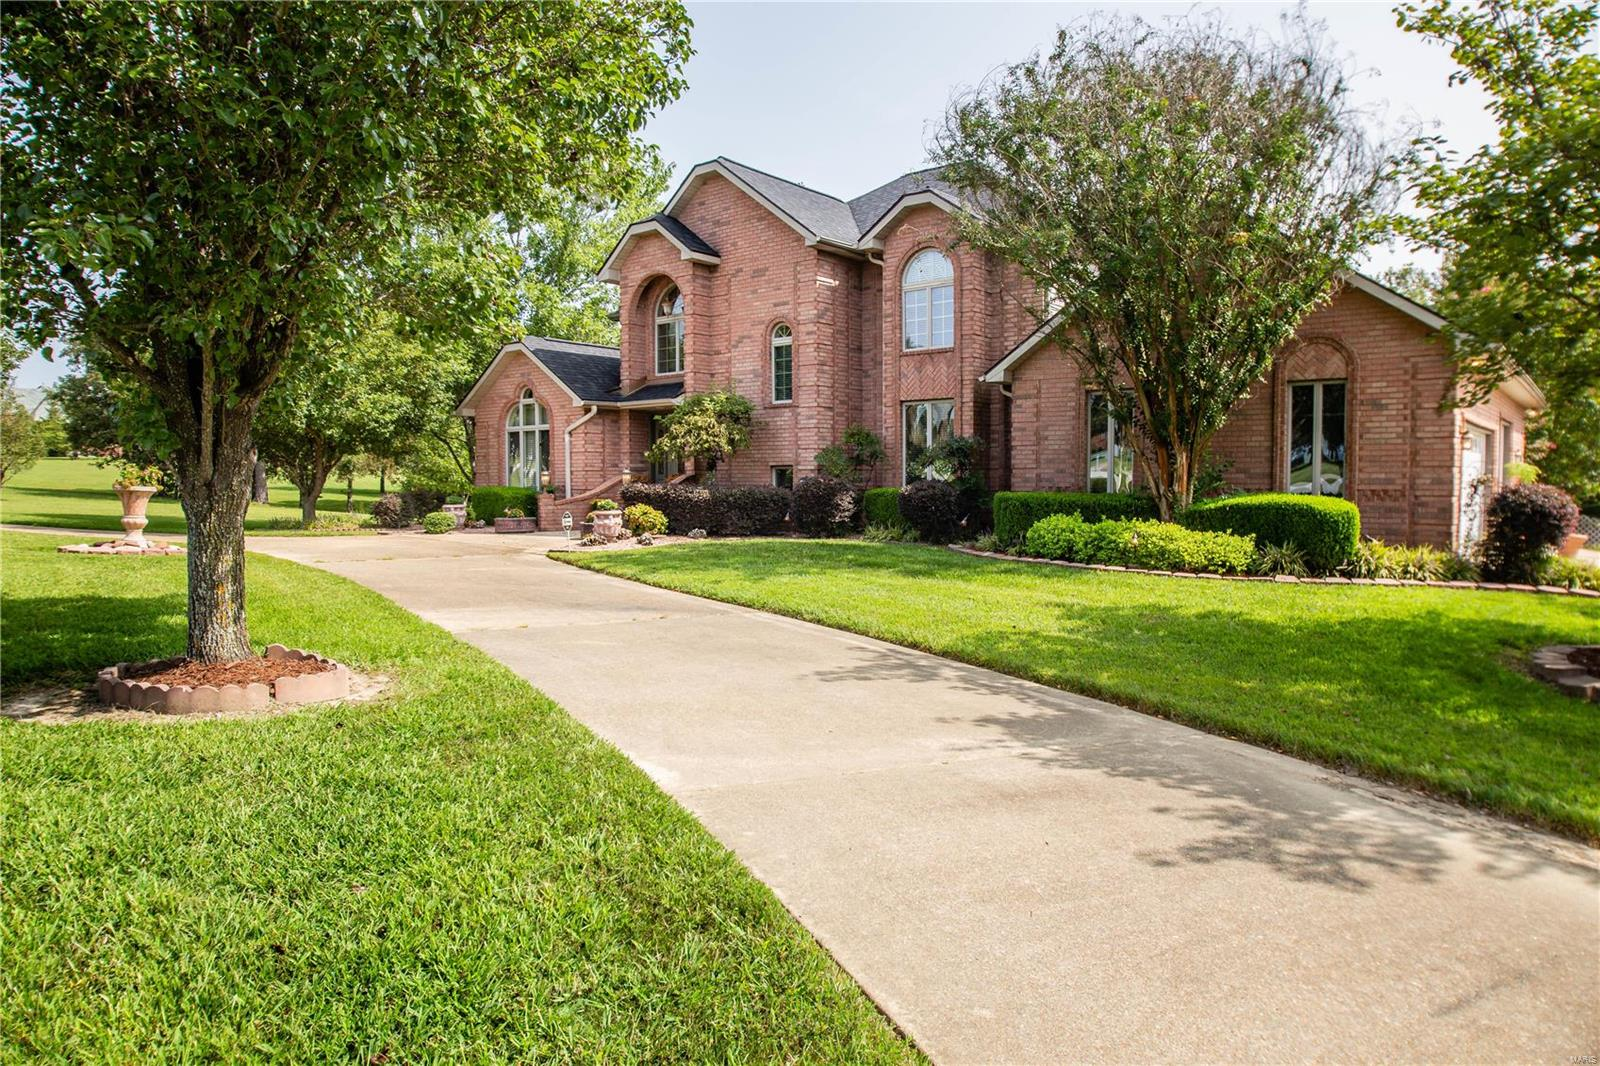 14114 Christy Lane Property Photo - Poplar Bluff, MO real estate listing